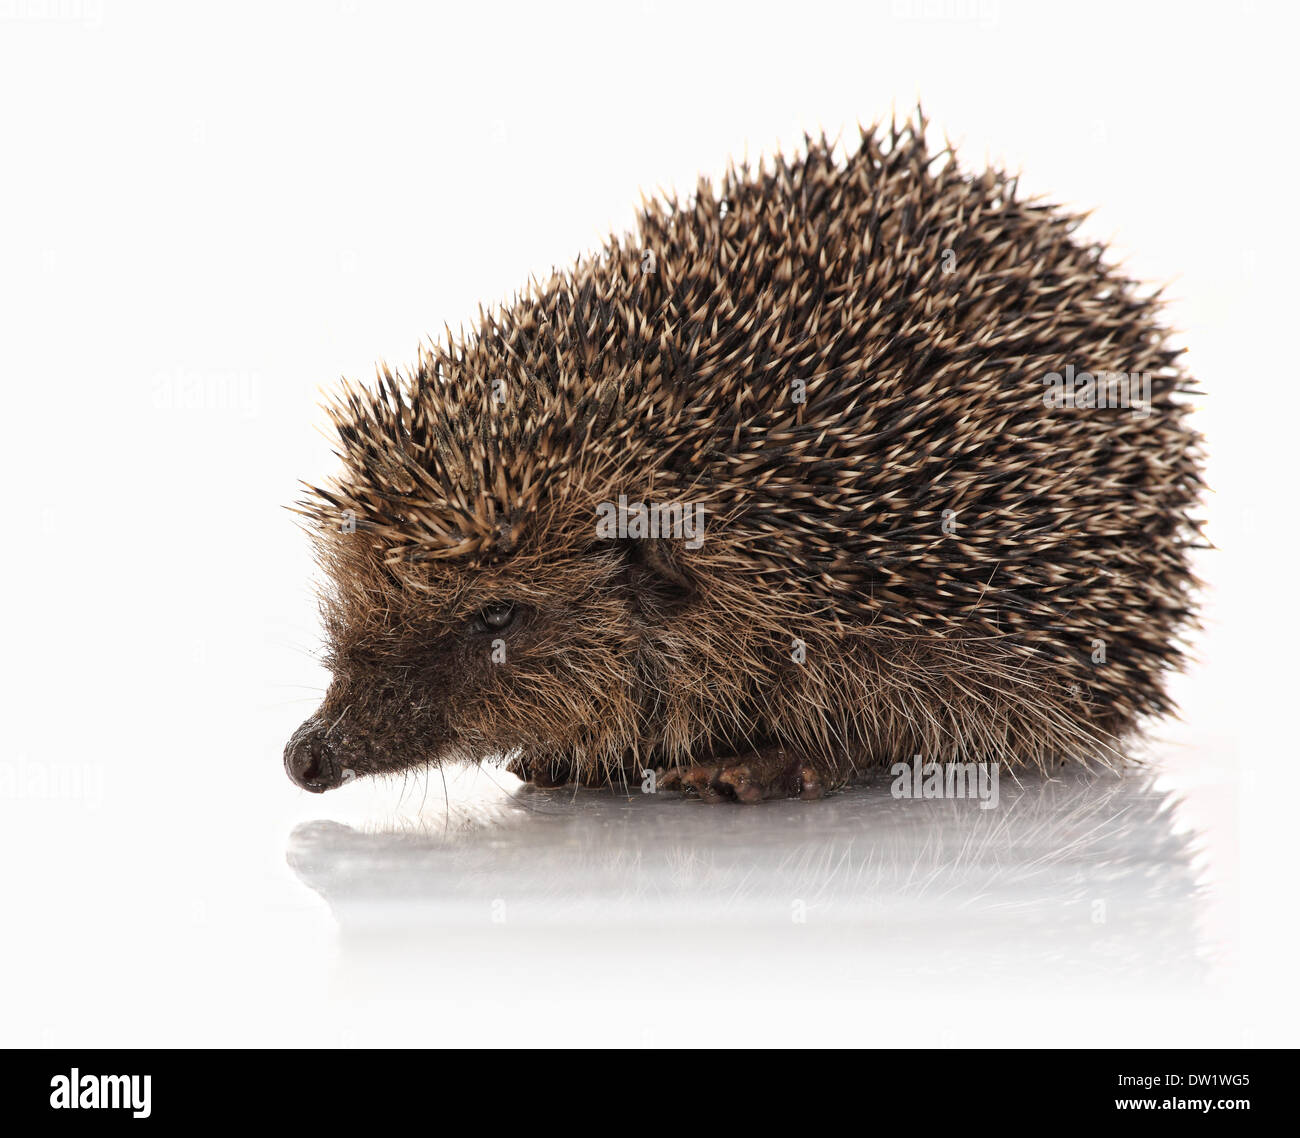 closeup of hedgehog - Stock Image